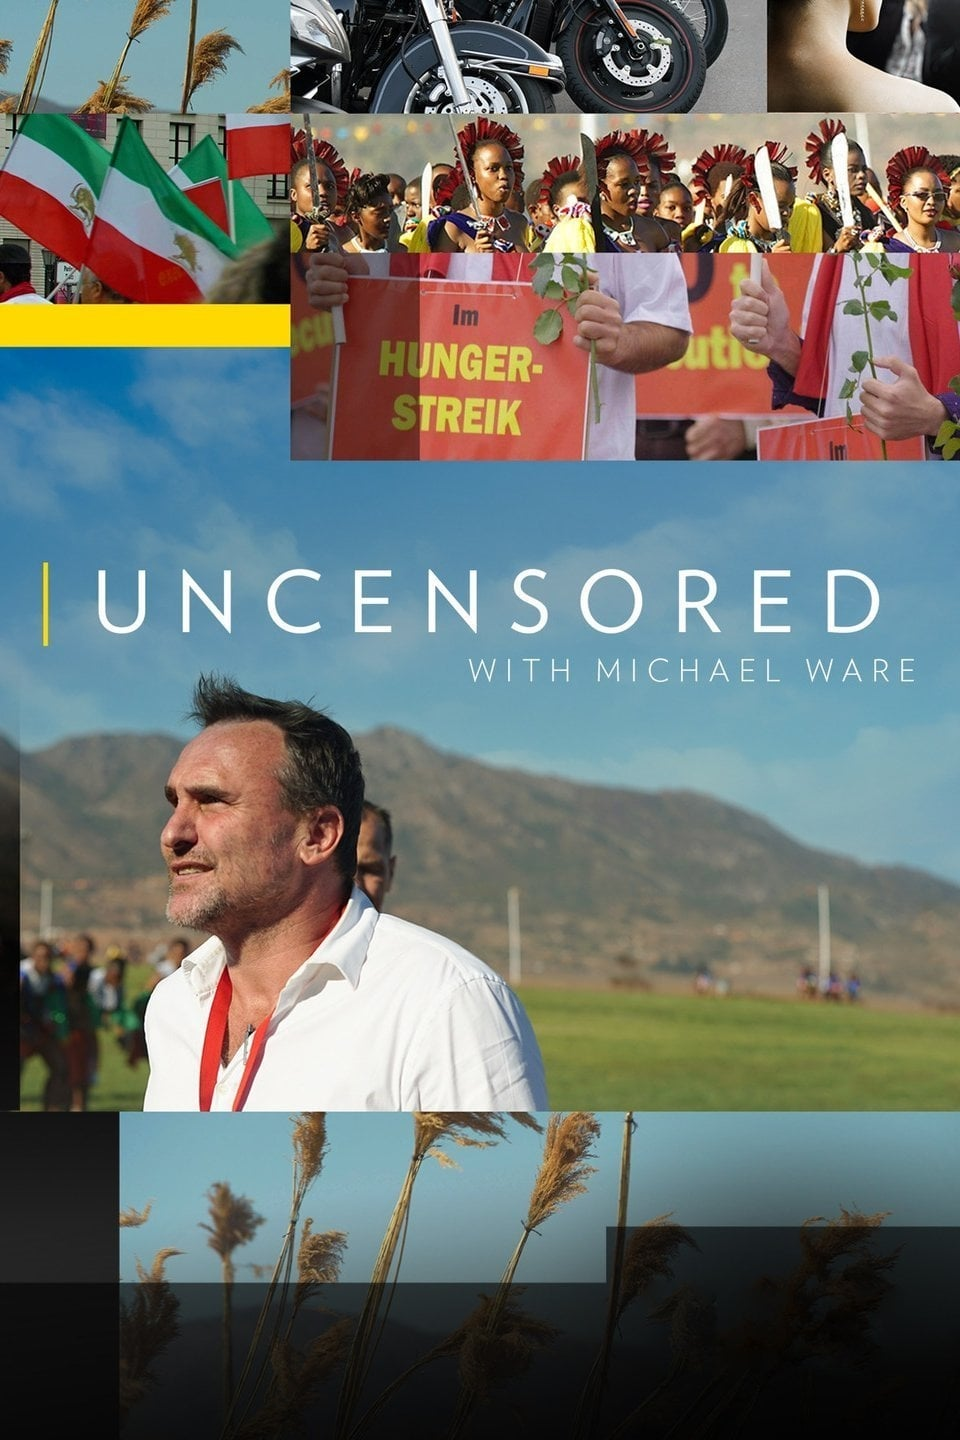 watch Uncensored with Michael Ware 2017 online free